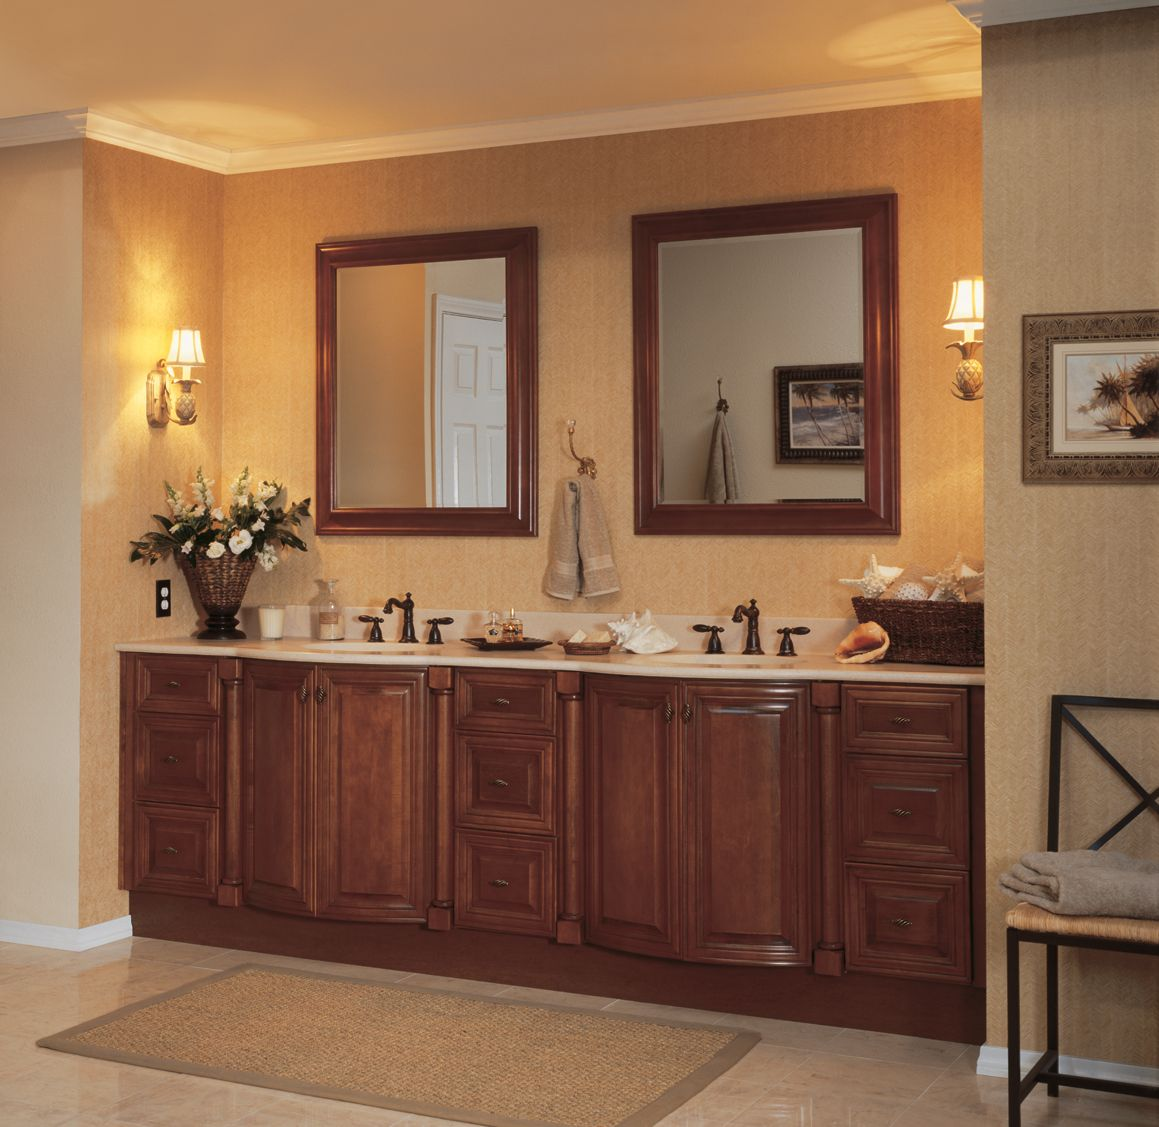 Beige Paint Color Elegant Wall Cabinet Design for Contemporary